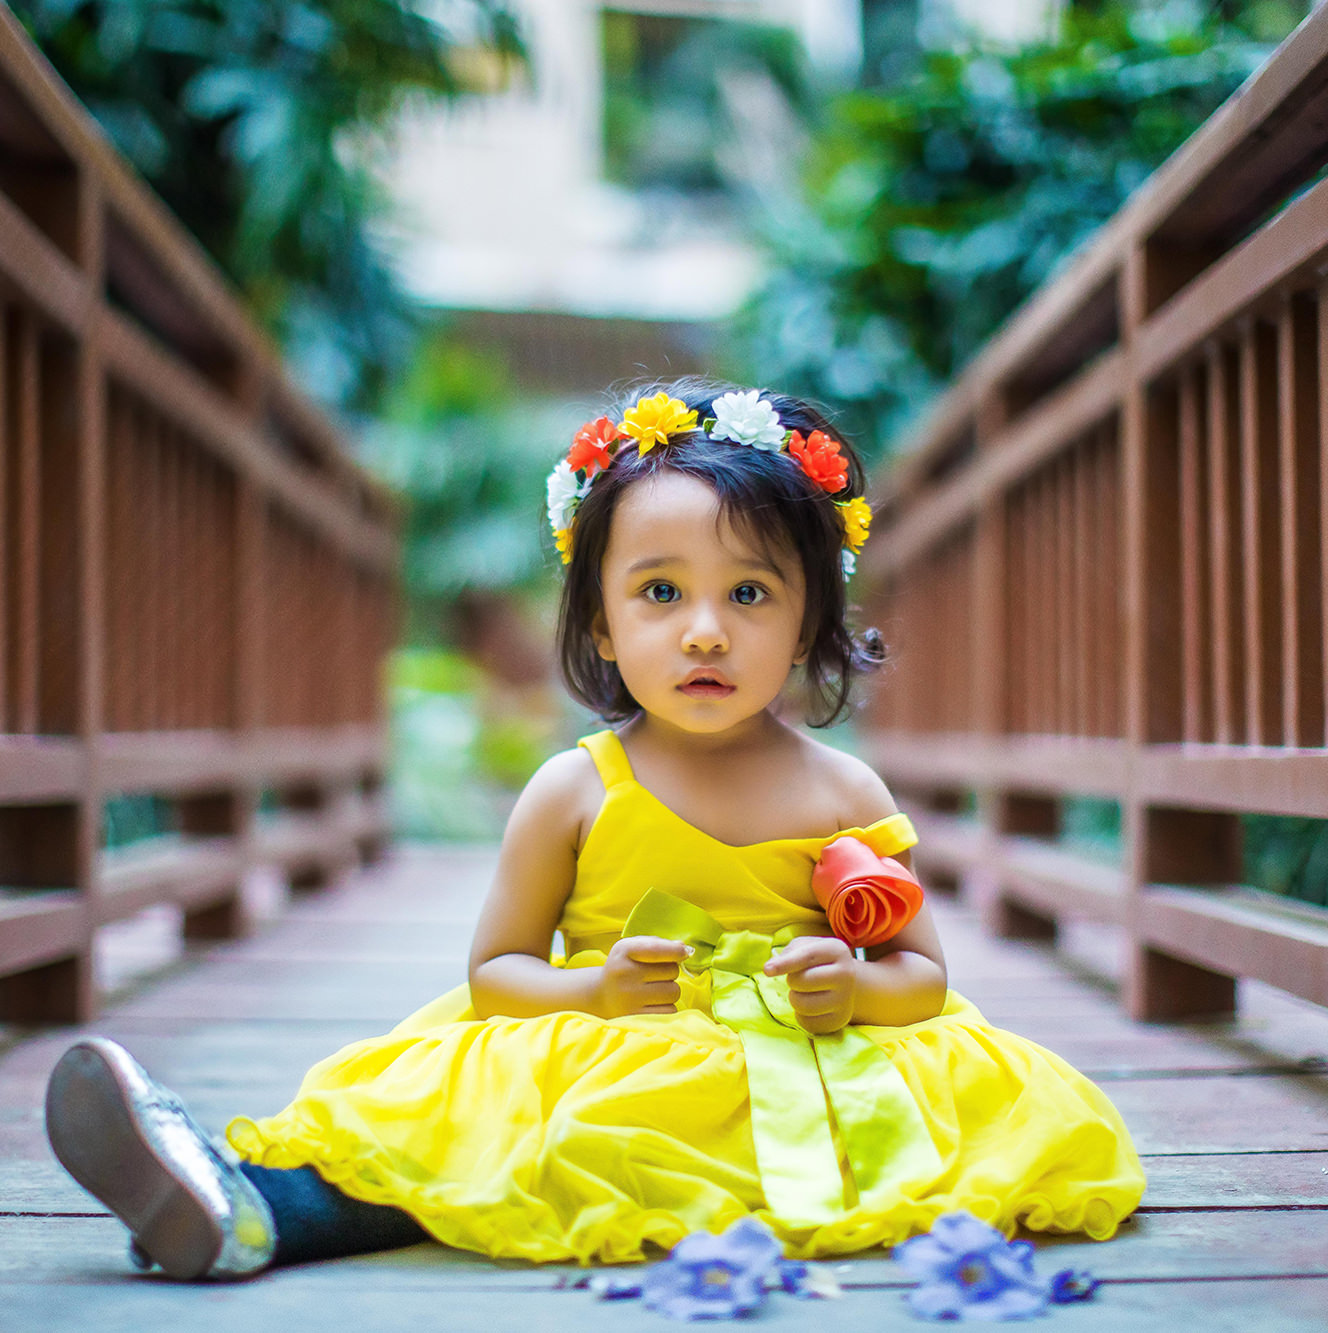 Neeta-Shankar-Photography-Kids-Baby-girl-children-portraits-photographer